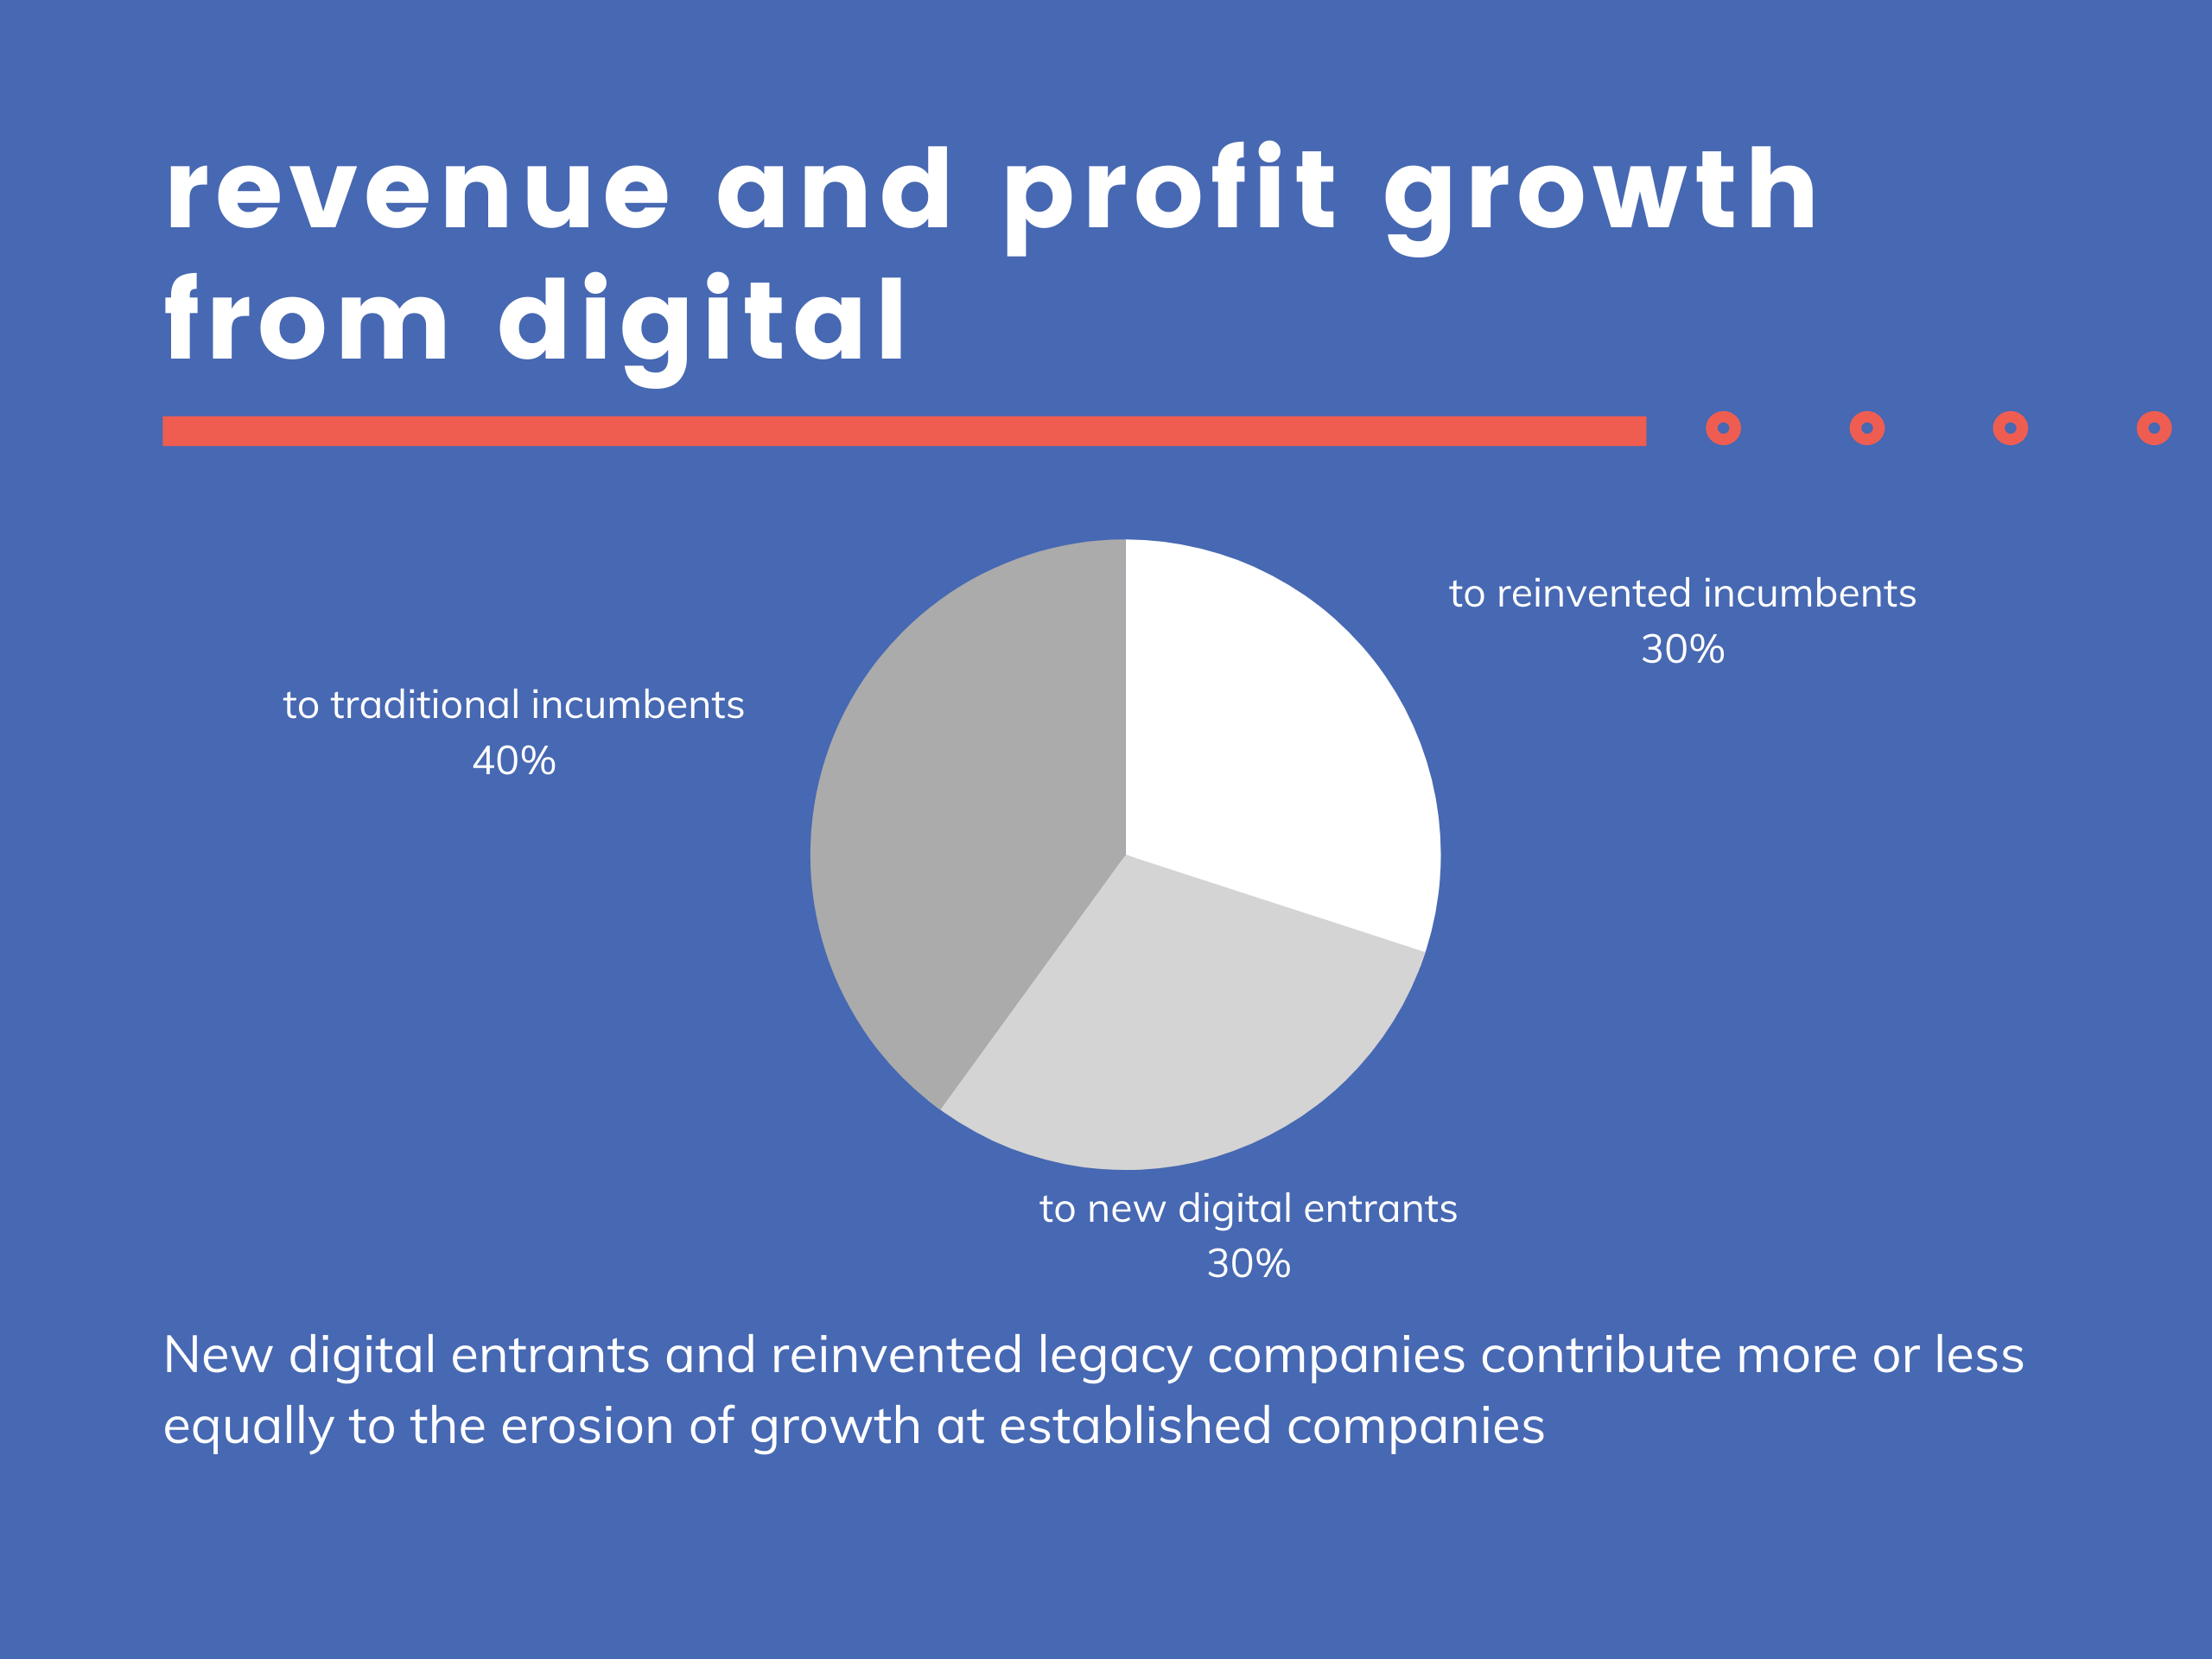 Percentage graph of revenue and profit growth from digital